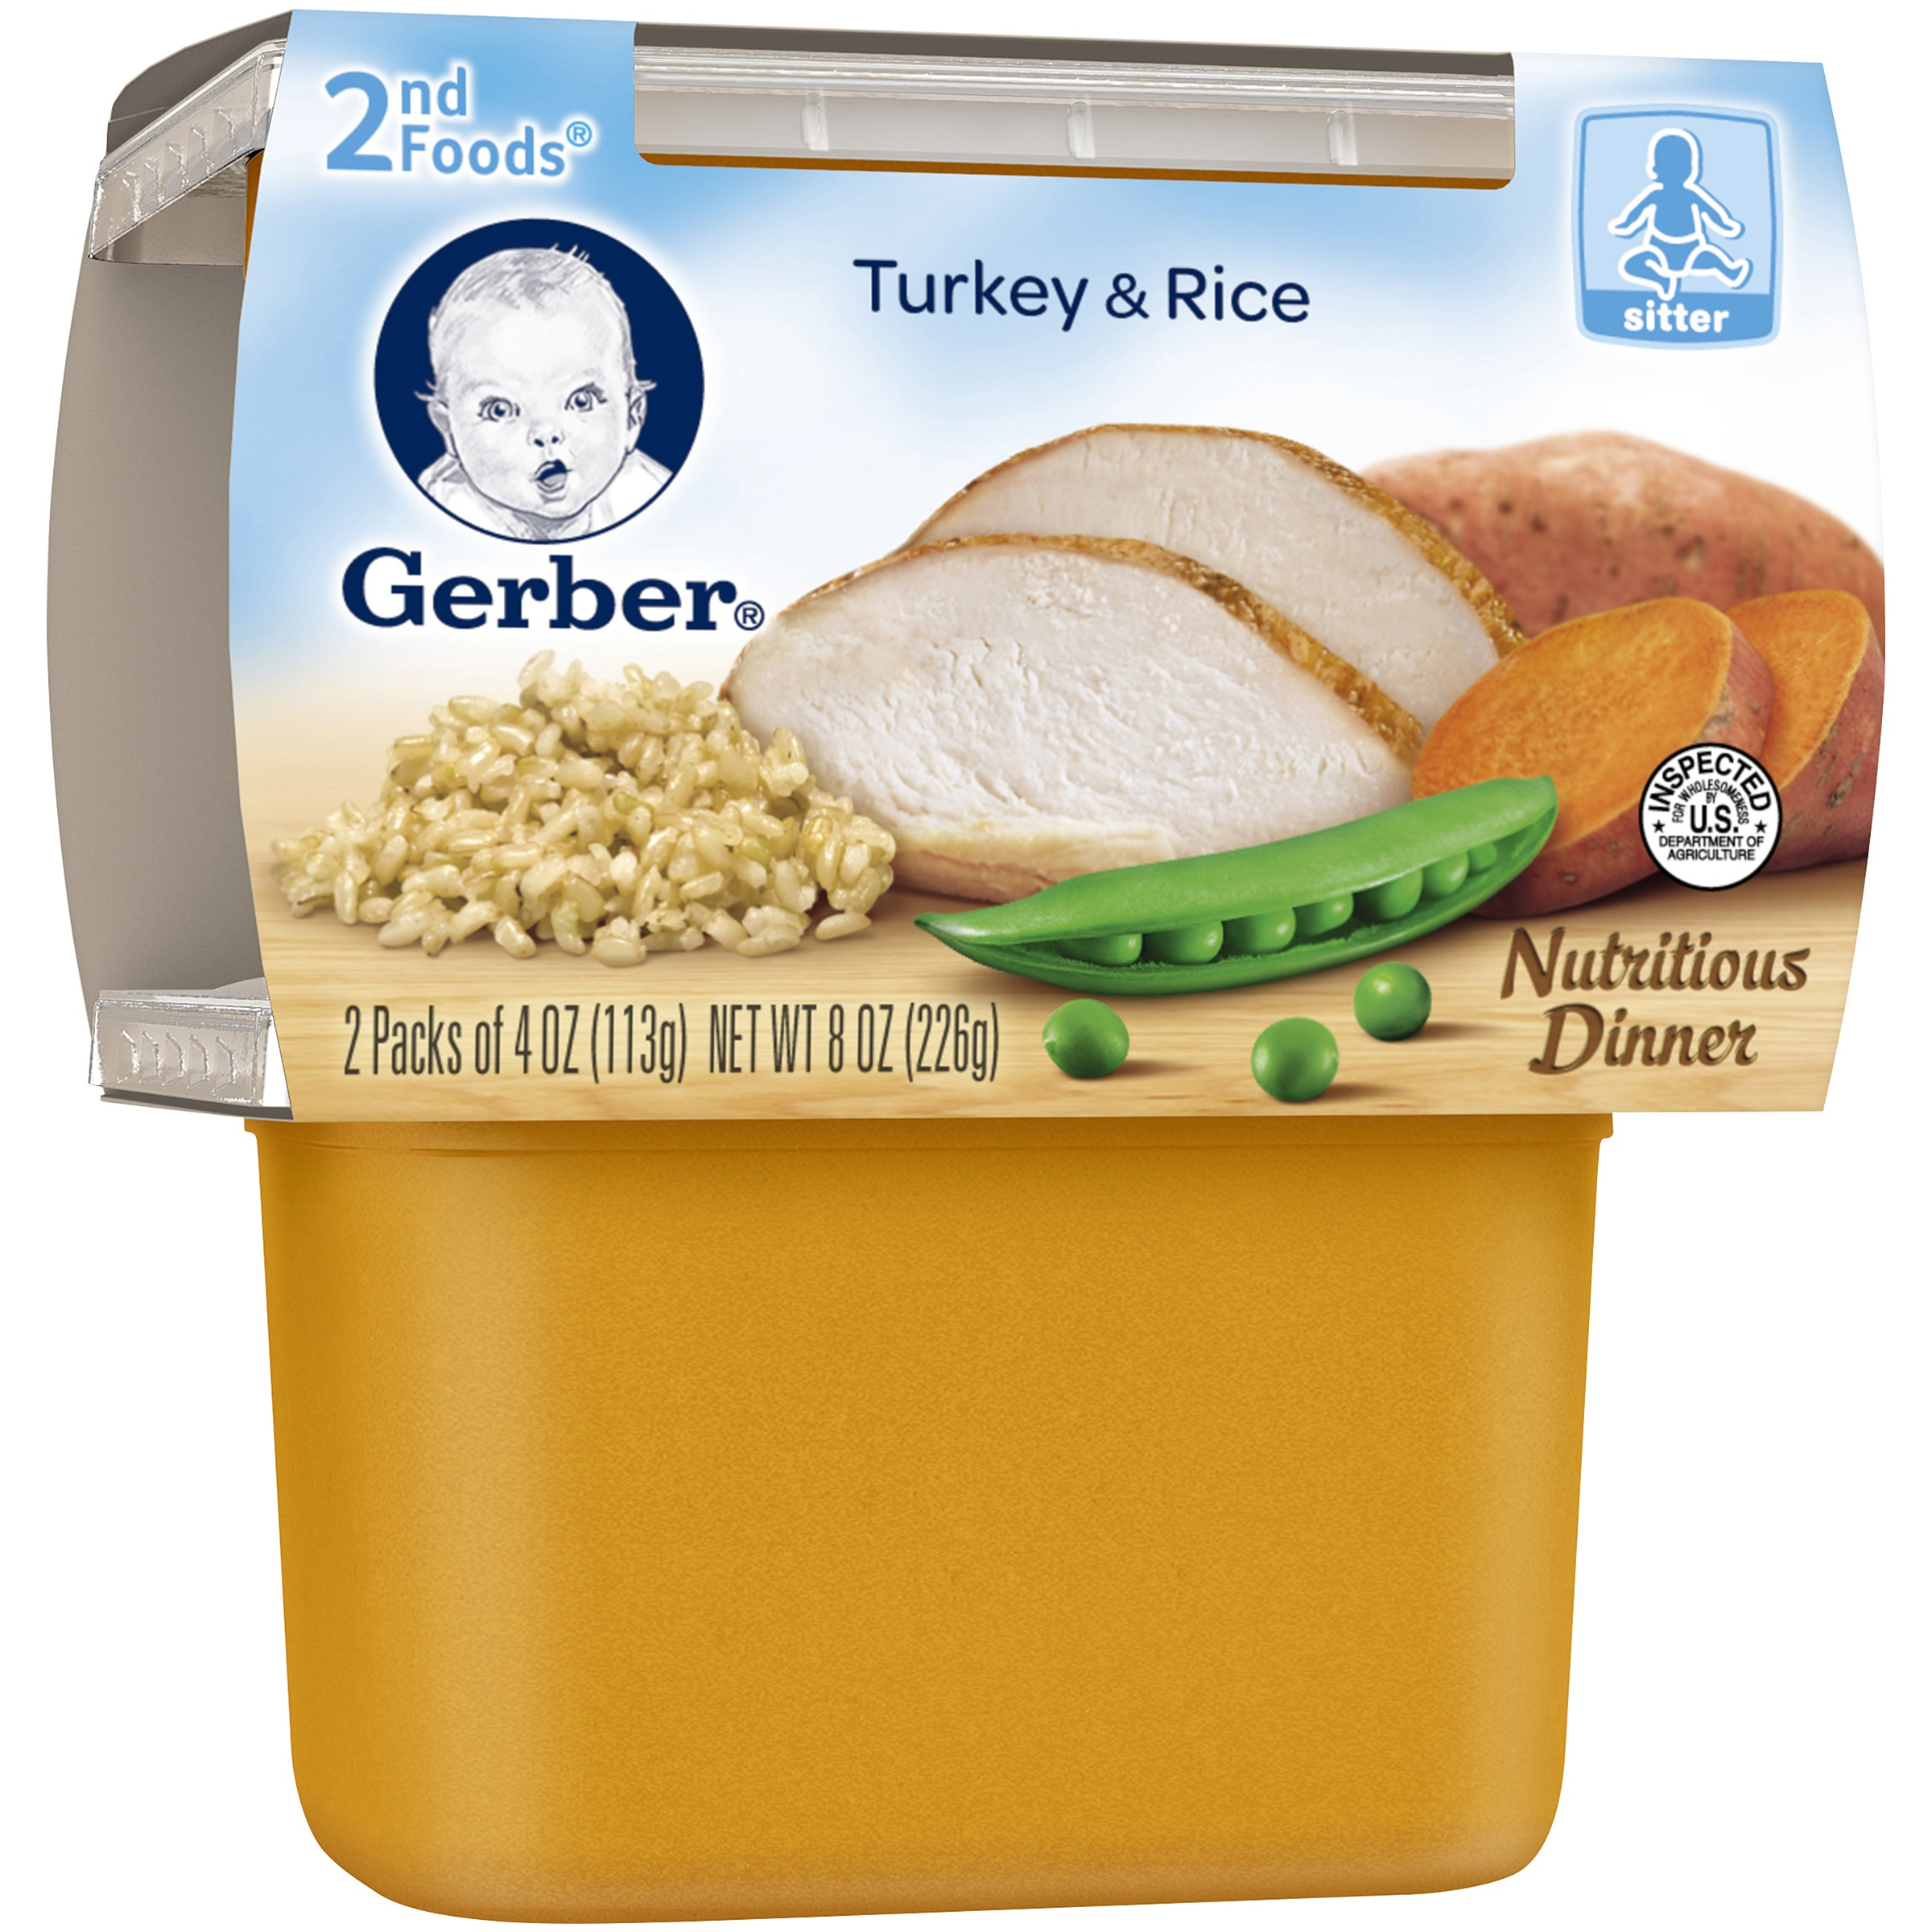 Gerber 2nd Foods Turkey & Rice Nutritious Dinner, 4 oz, 2 count